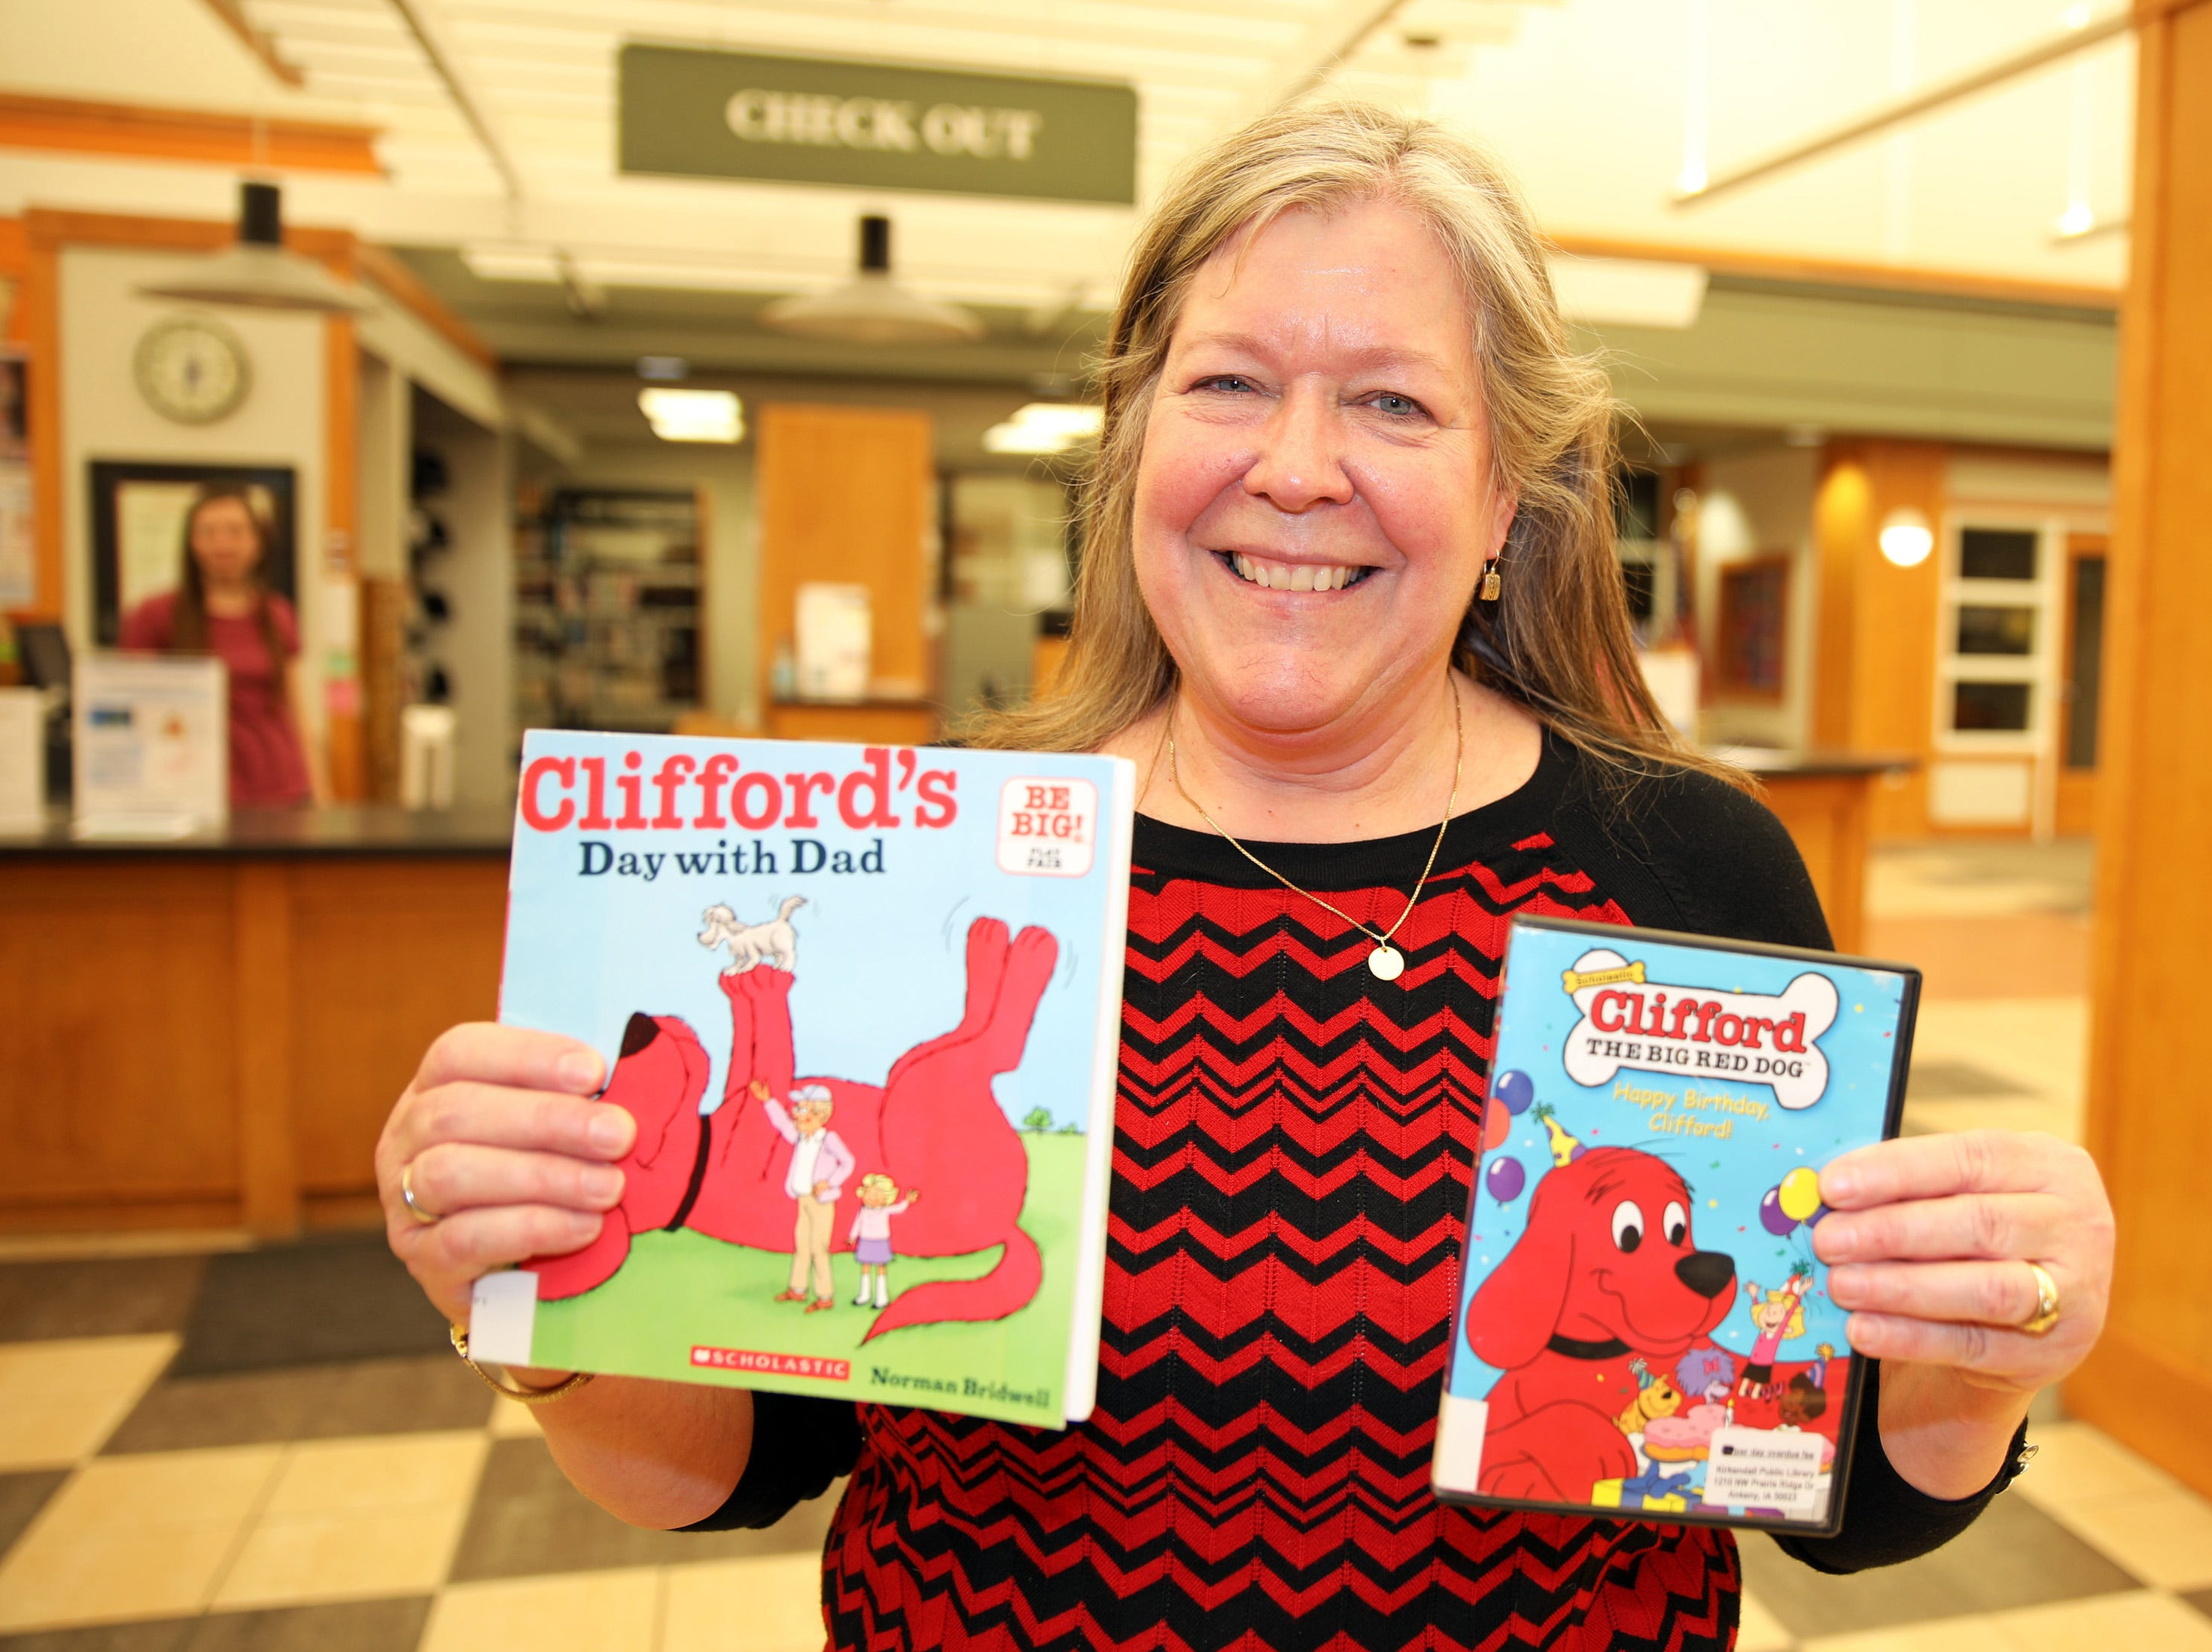 Youth and Children's Librarian Sherry Schlundt holds a few of the Clifford items available for checkout, during a birthday party for Clifford the Big Red Dog at Kirkendall Public Library in Ankeny on Tuesday, Feb. 5, 2019.